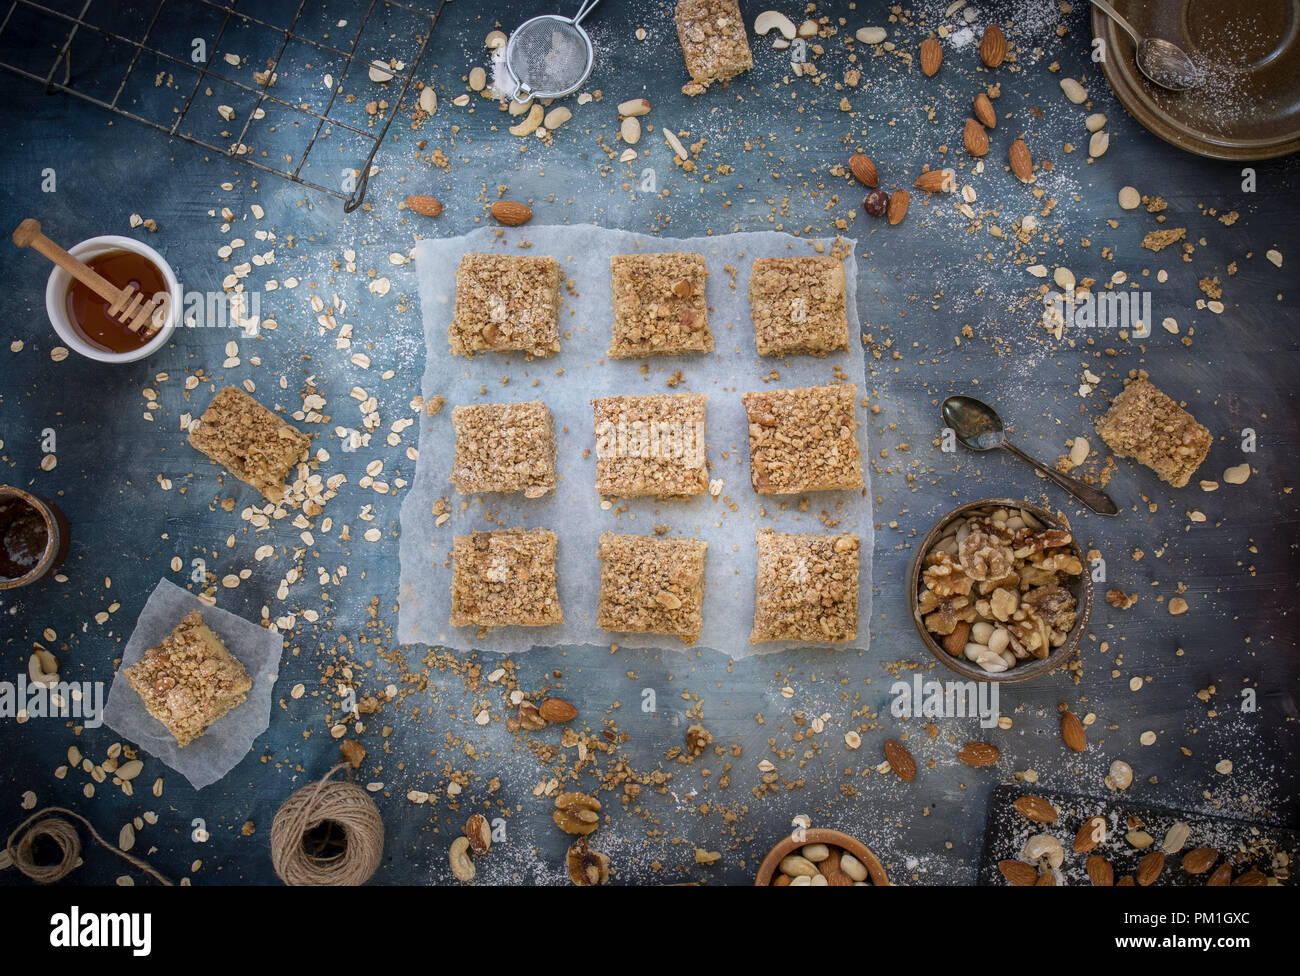 home baked caramel slices baking paper, with a textured blue background including nuts seeds and grains, a flatlay overhead image, part of a series - Stock Image